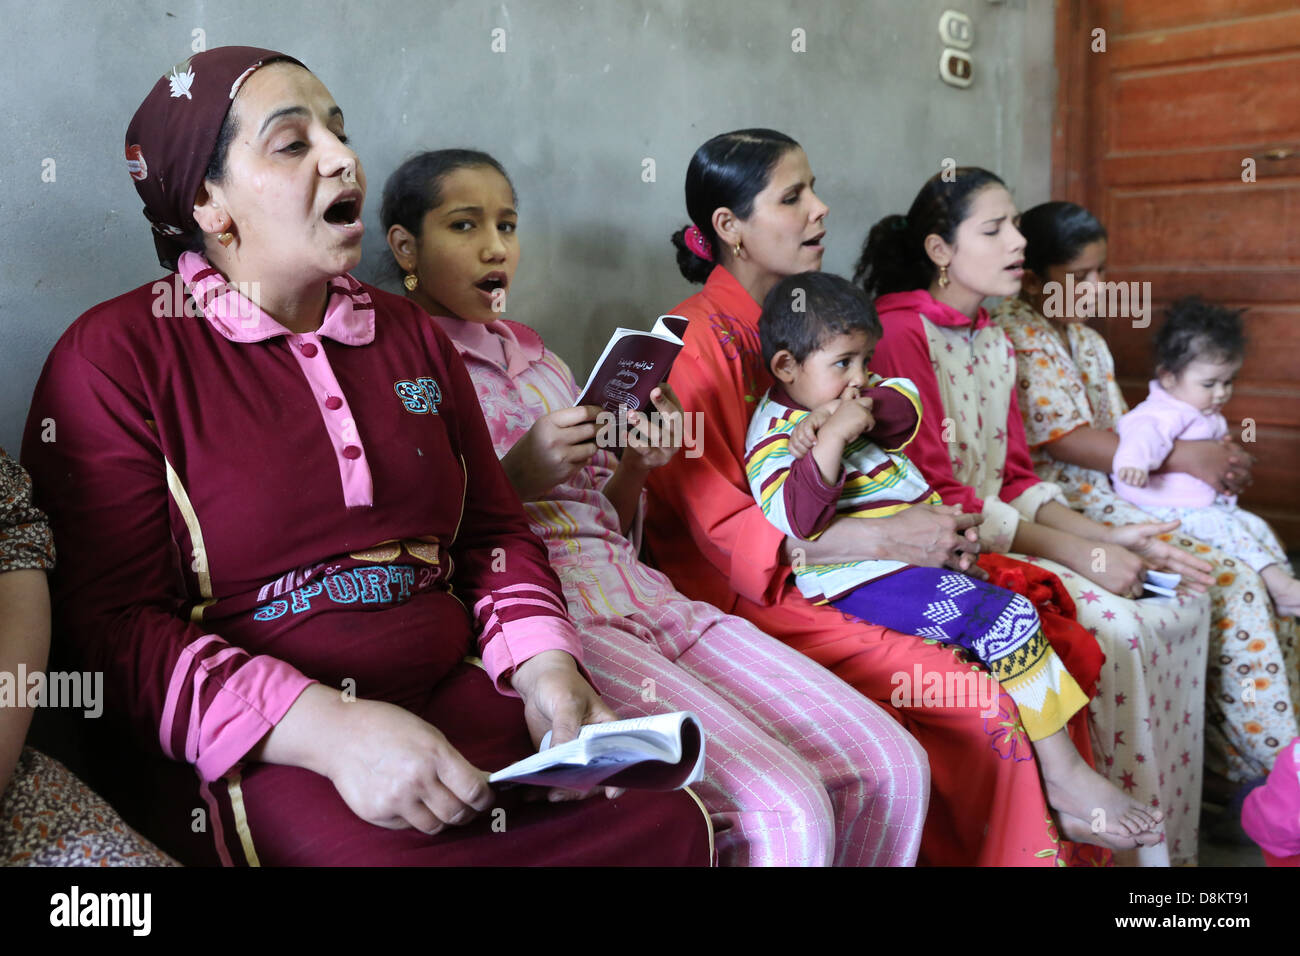 Egypt, christian catholic-coptic religious education, people singing christian songs in a private household in Upper - Stock Image